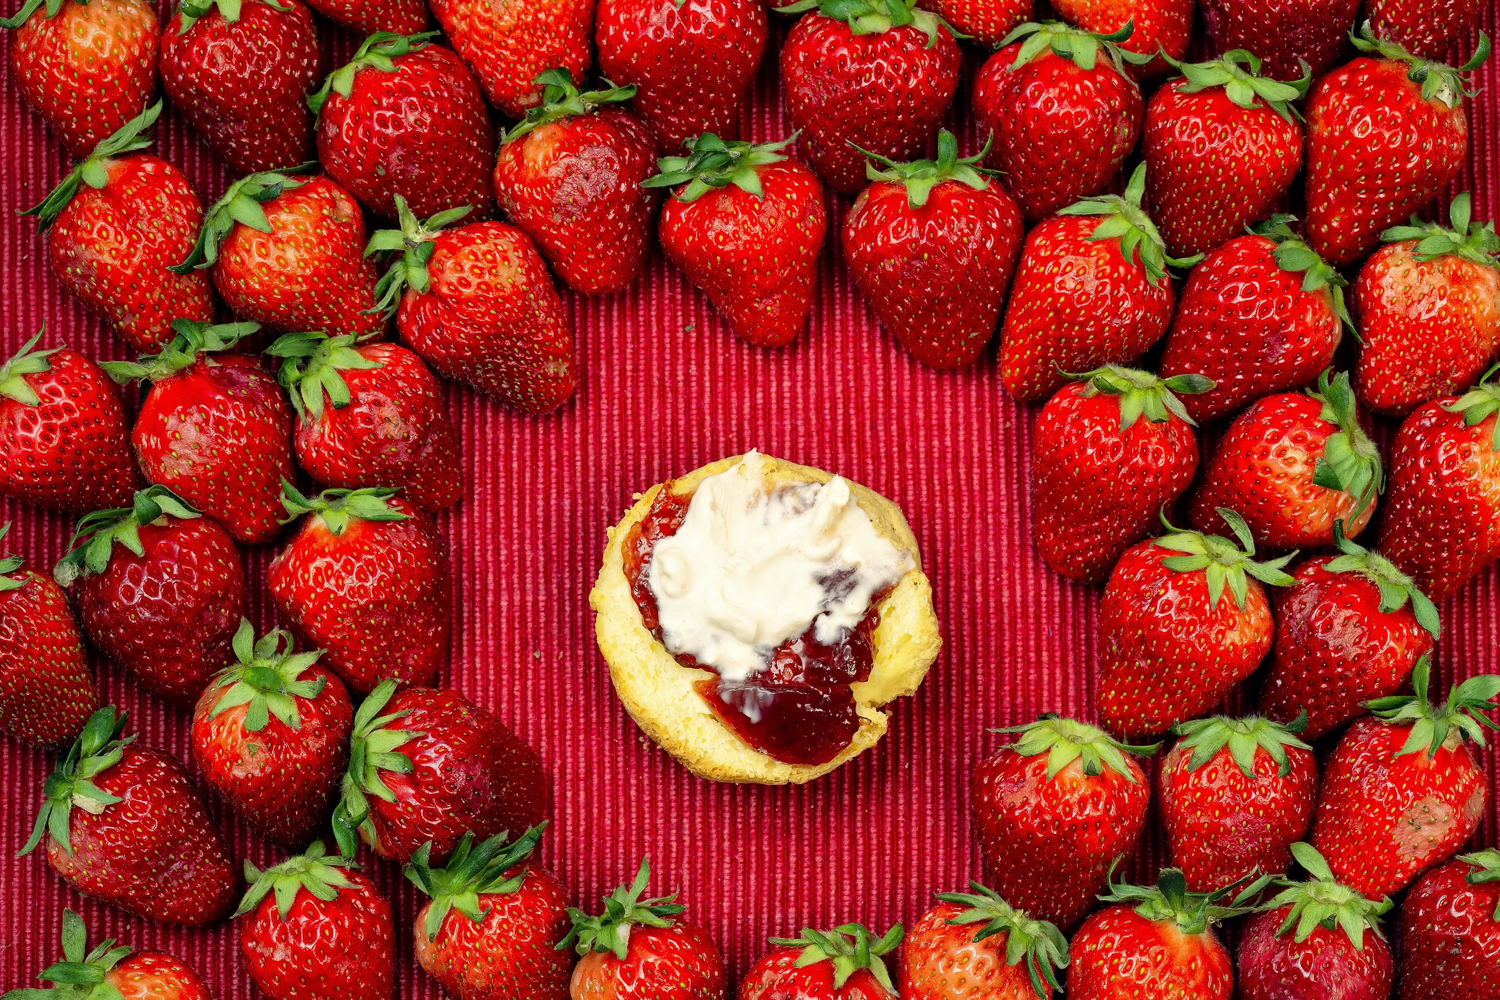 strawberries framing the food in the center